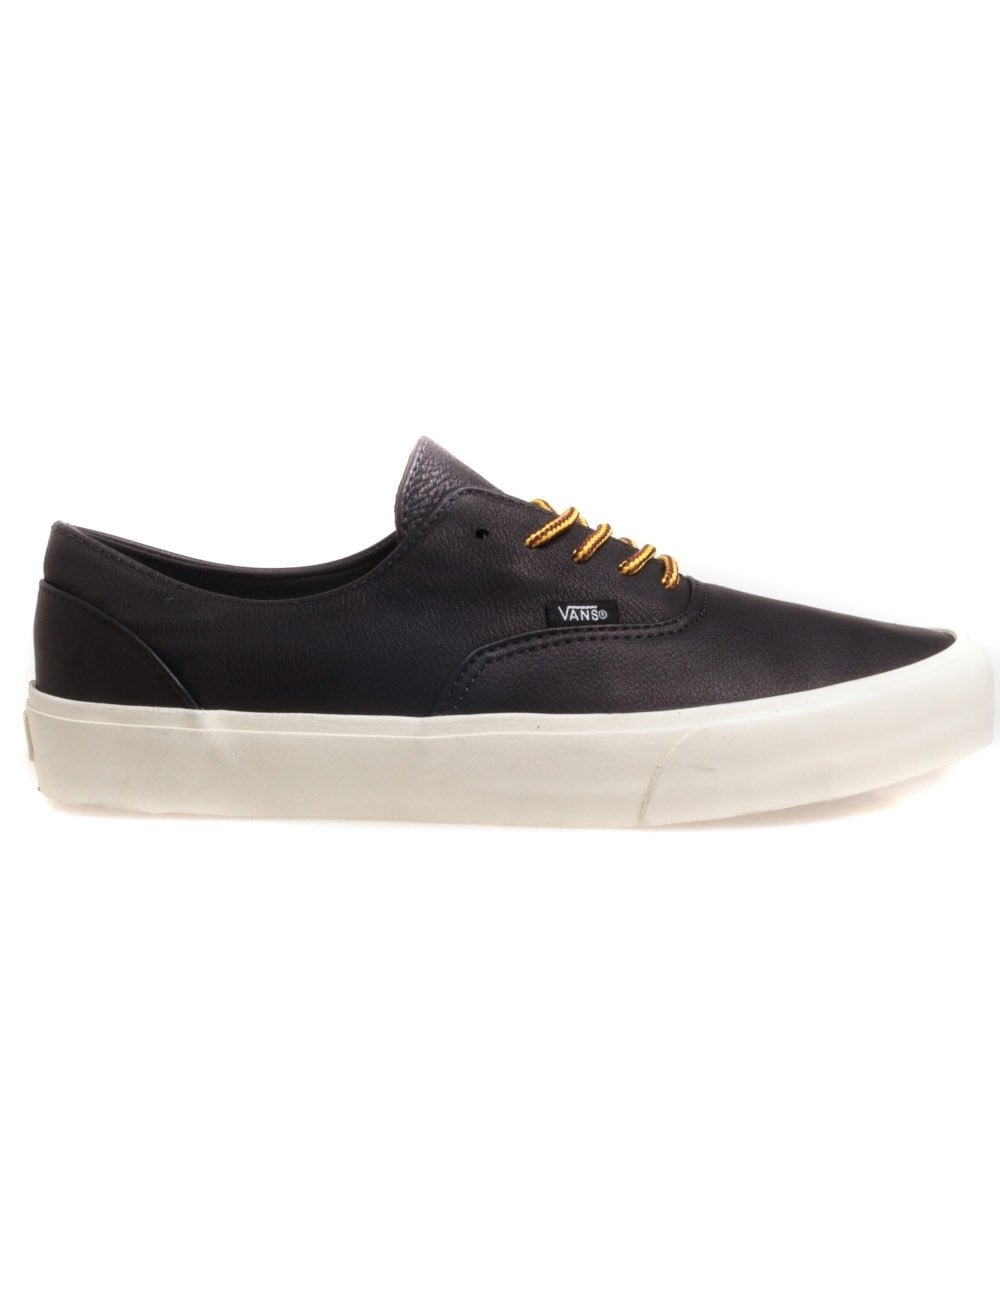 3f169d9d6402fb Vans California Era Decon CA - Black Vanilla Ice (Leather ...